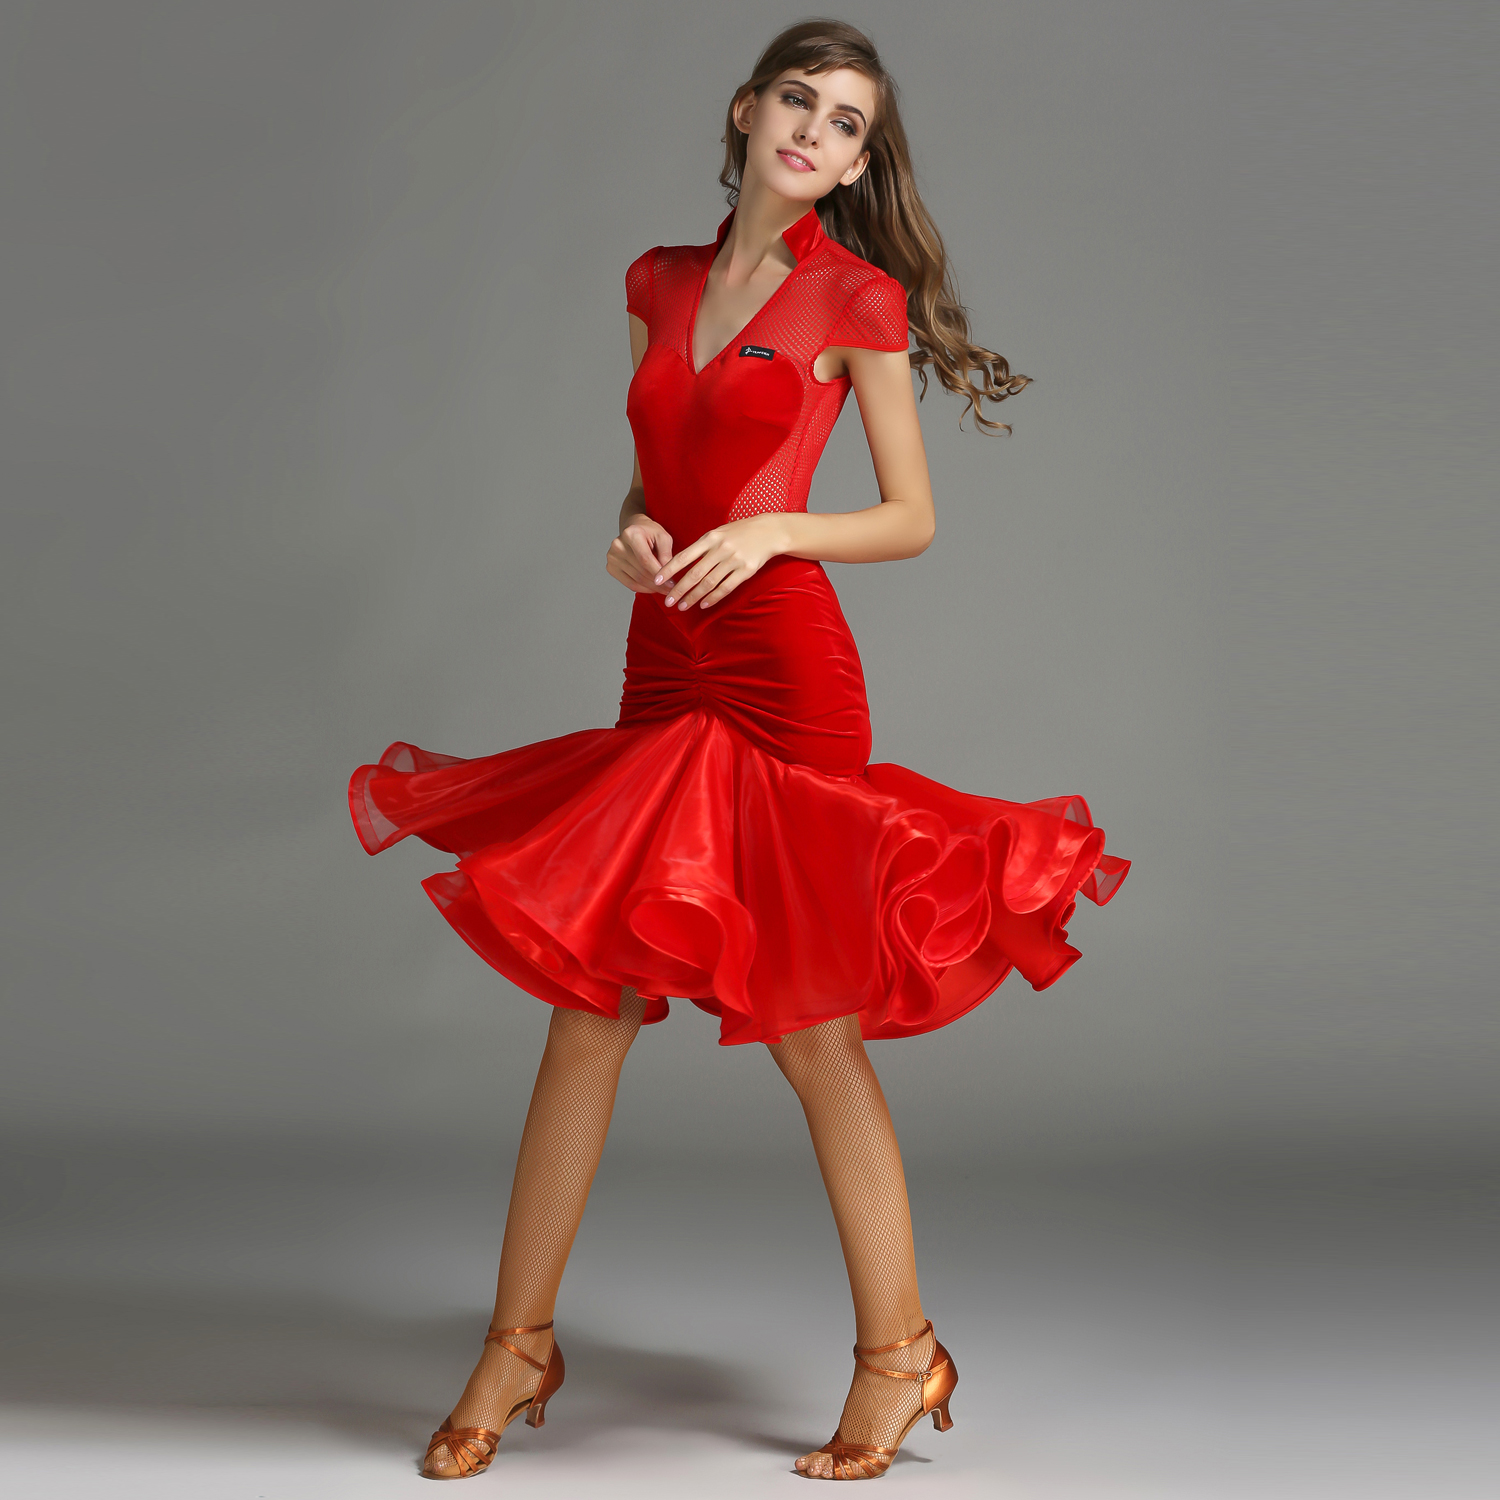 Latin Dance Costume Top Leotard and Skirt Suits Women Lady Adult Dress Ballroom Practice Clothes Costume Evening Party Dress 1846 and 1847 latin dance top and skirt suits dance dress ballroom costume leotard women lady adult evening party dress